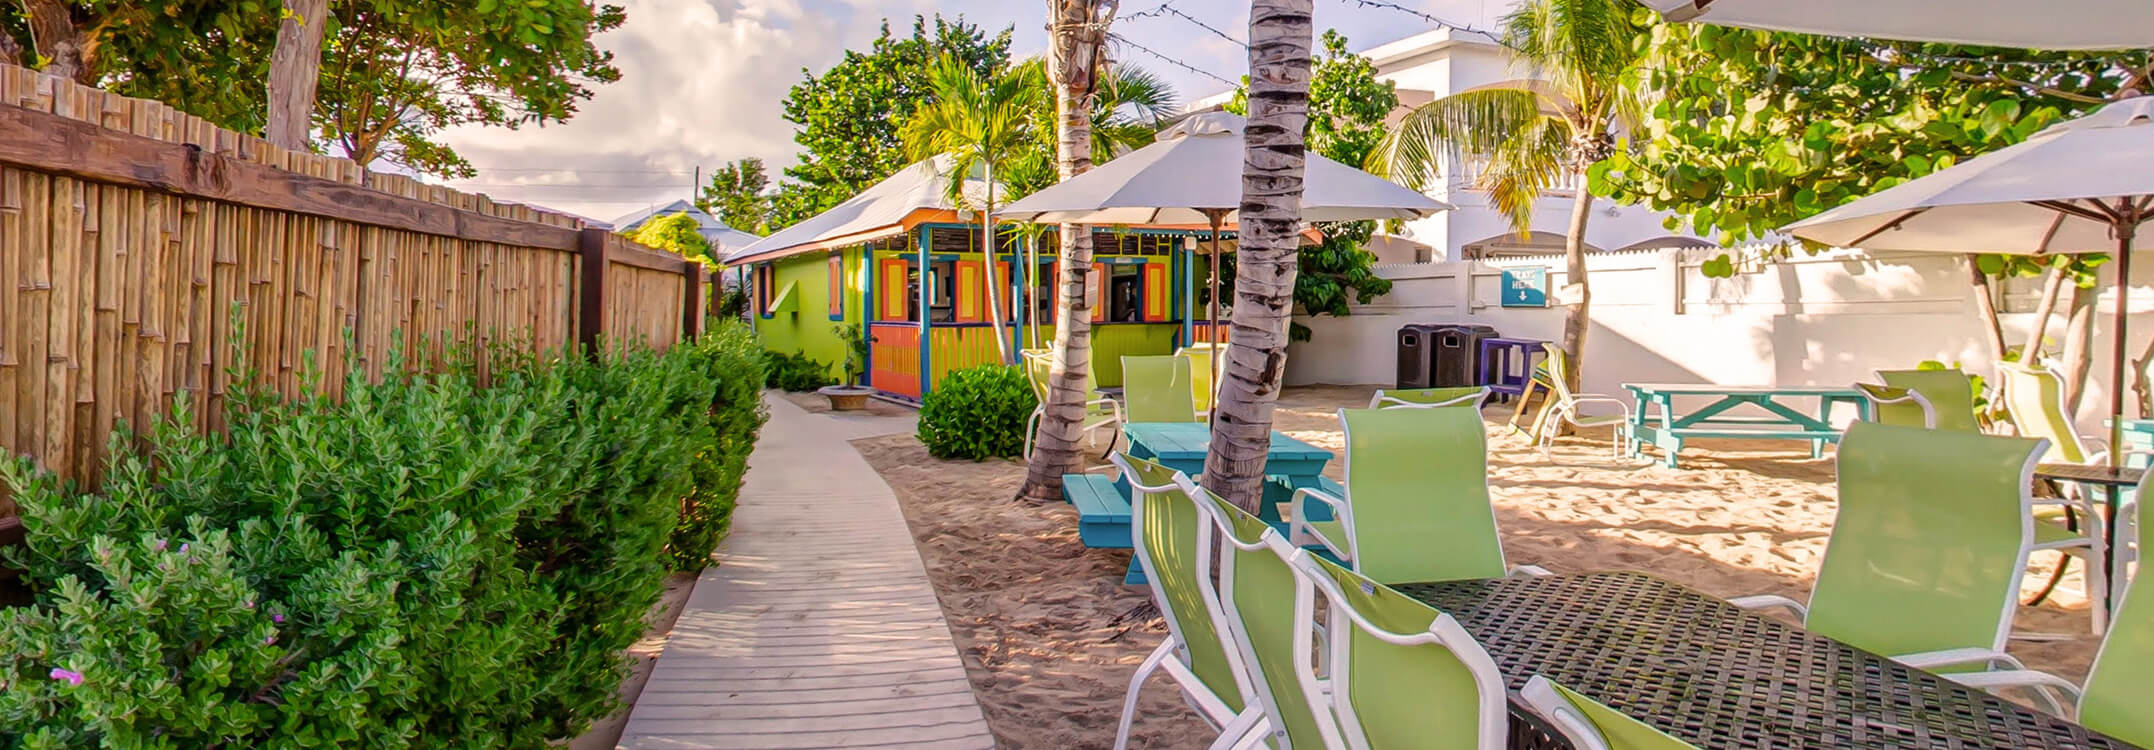 Path to colorful Beach Shack with seating on Anguilla beach shaded by umbrellas and palm trees